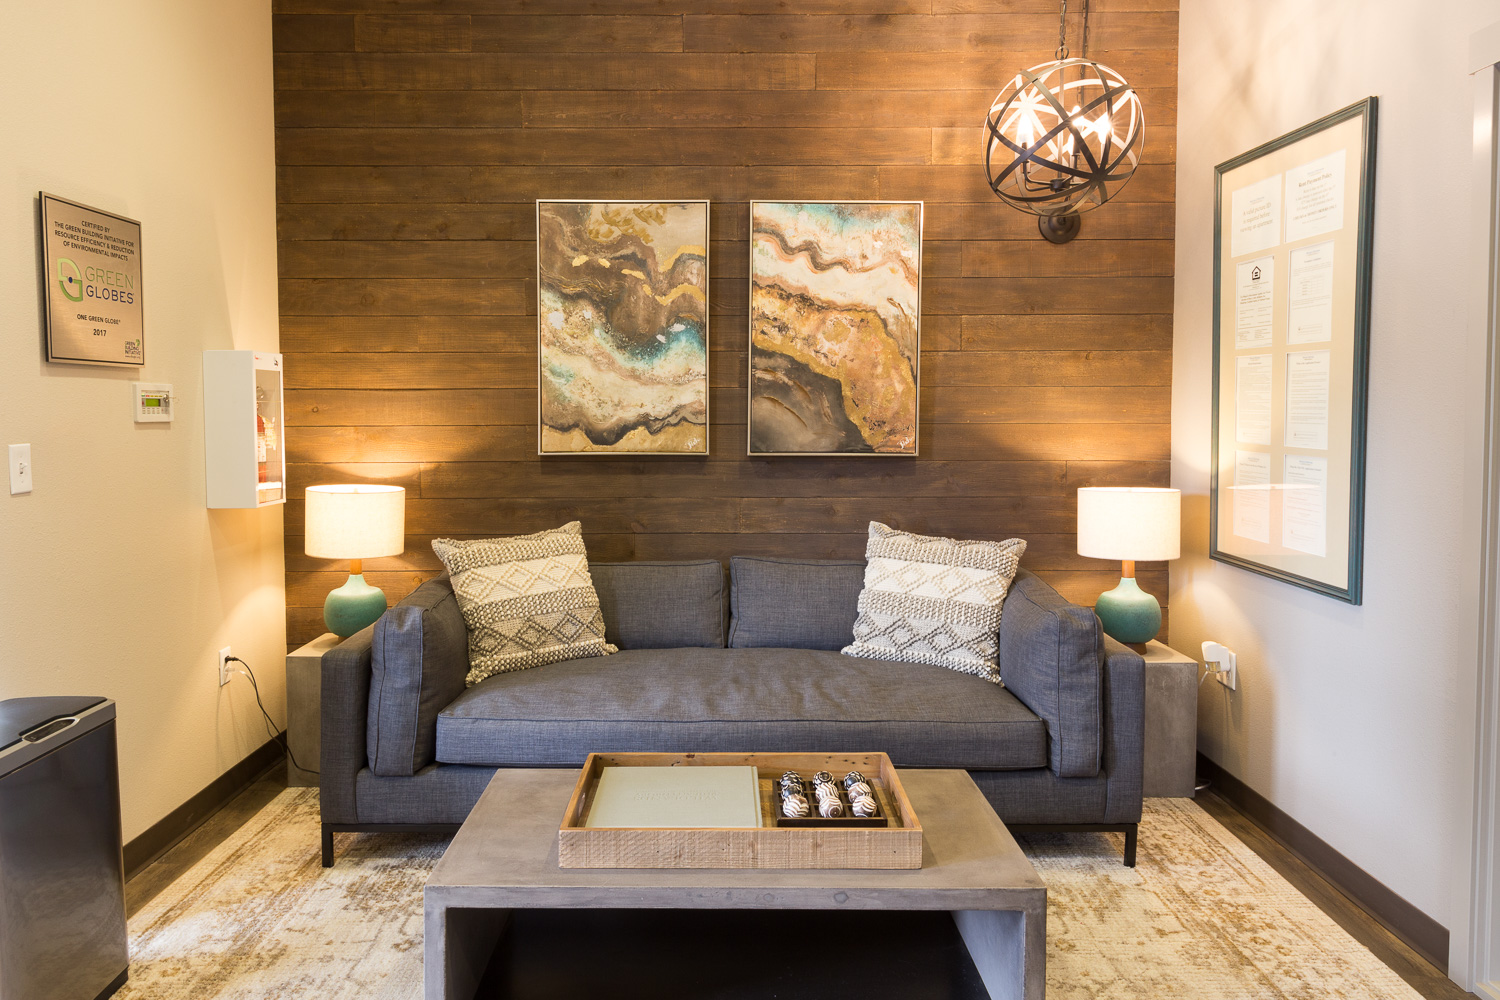 Real Estate Listing Photo of a sitting room